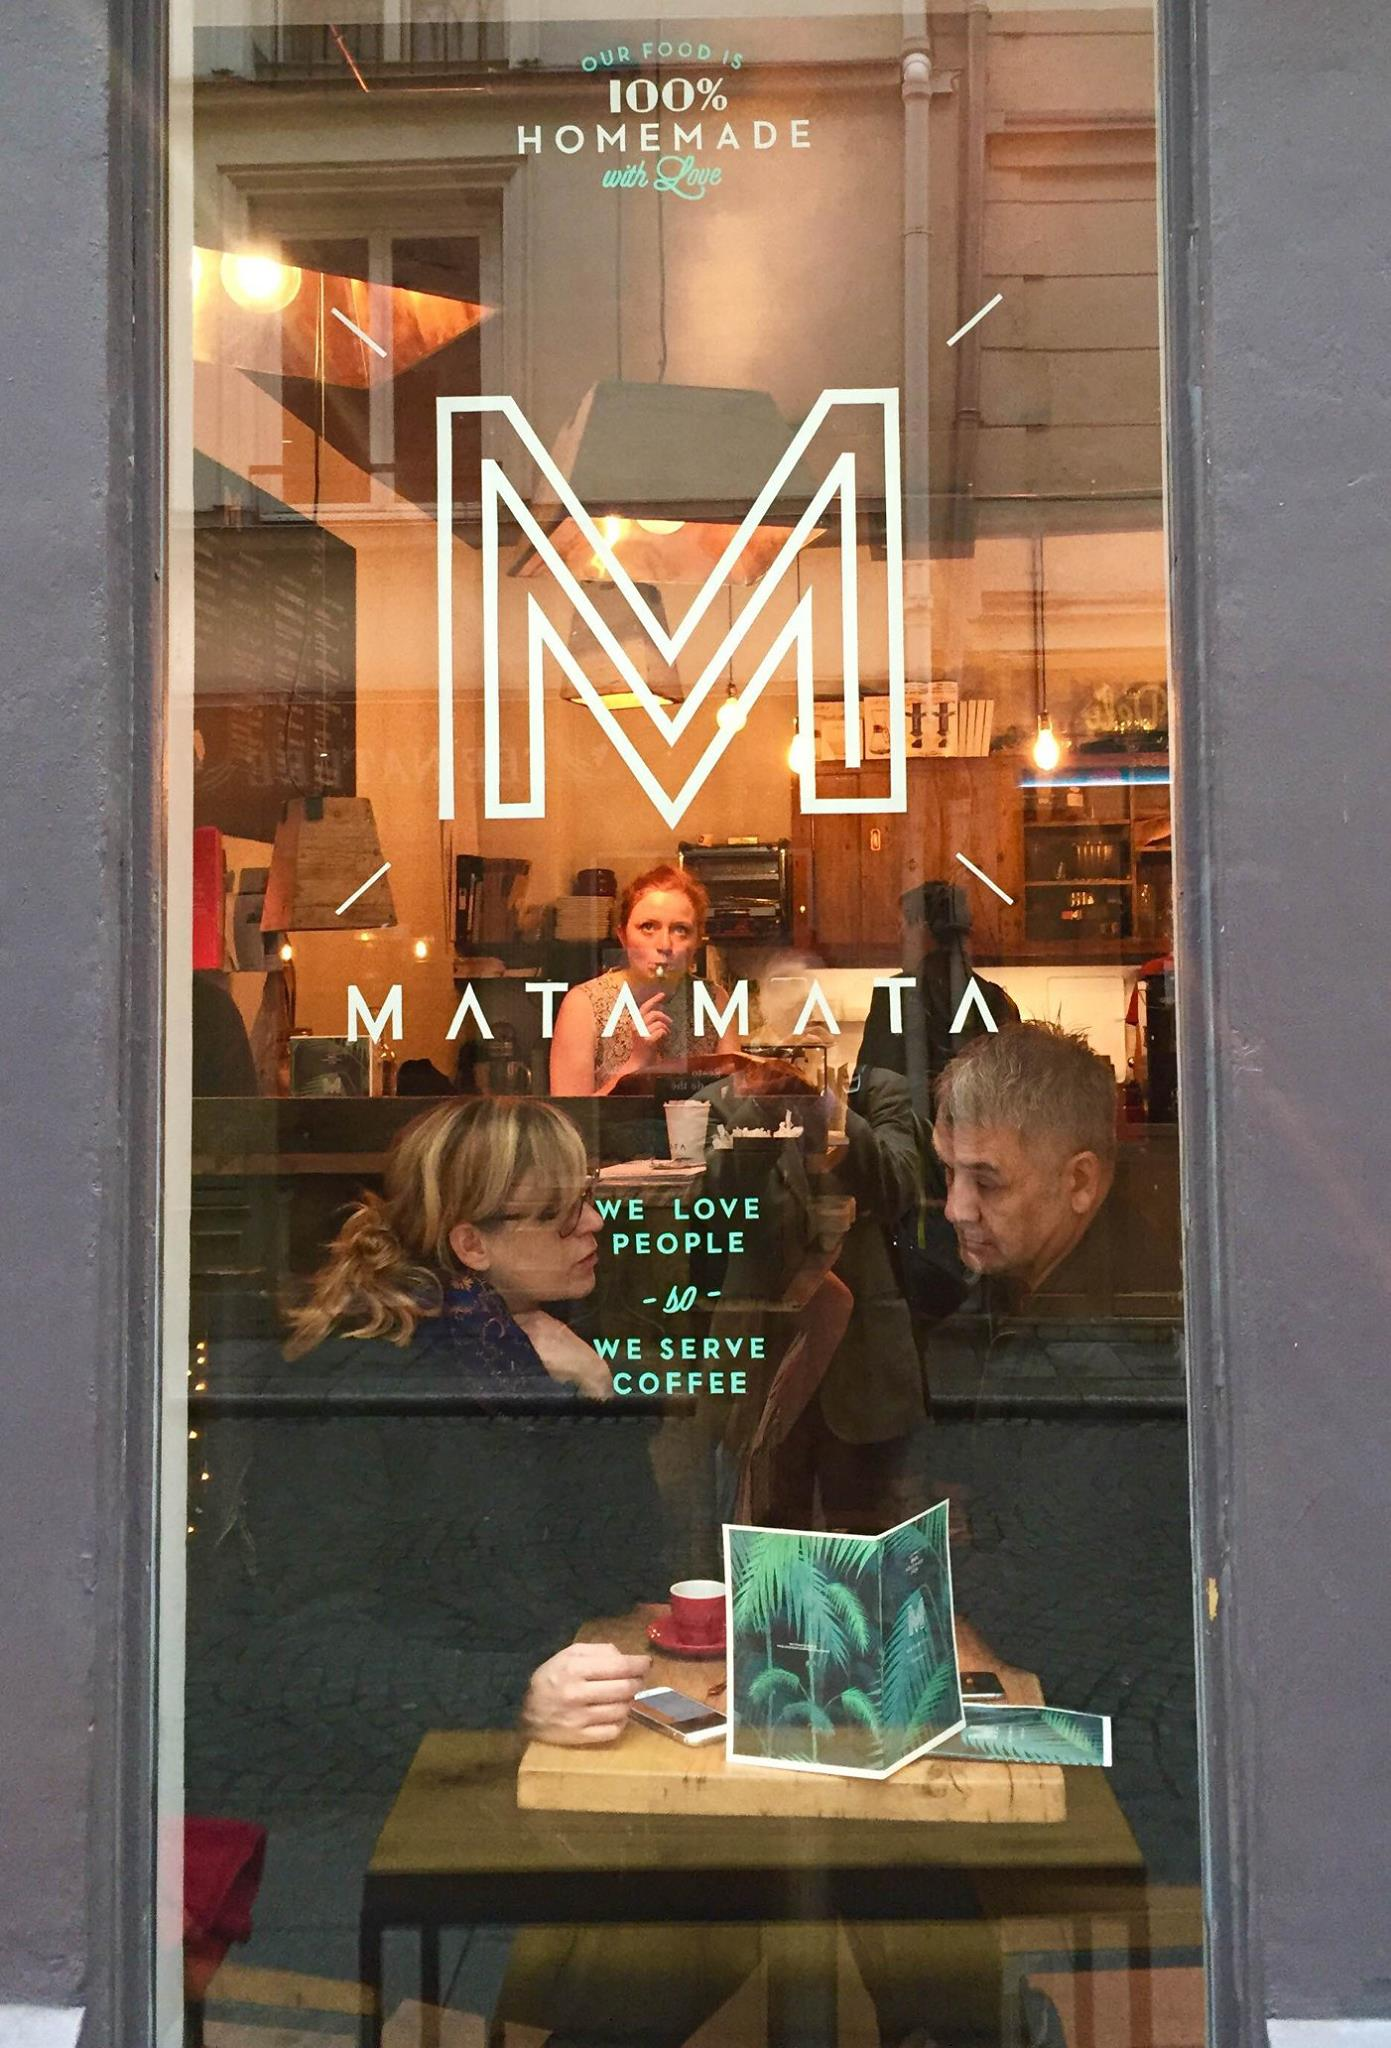 Matamata, small and cozy on the Rue d'Argout in the 2nd.